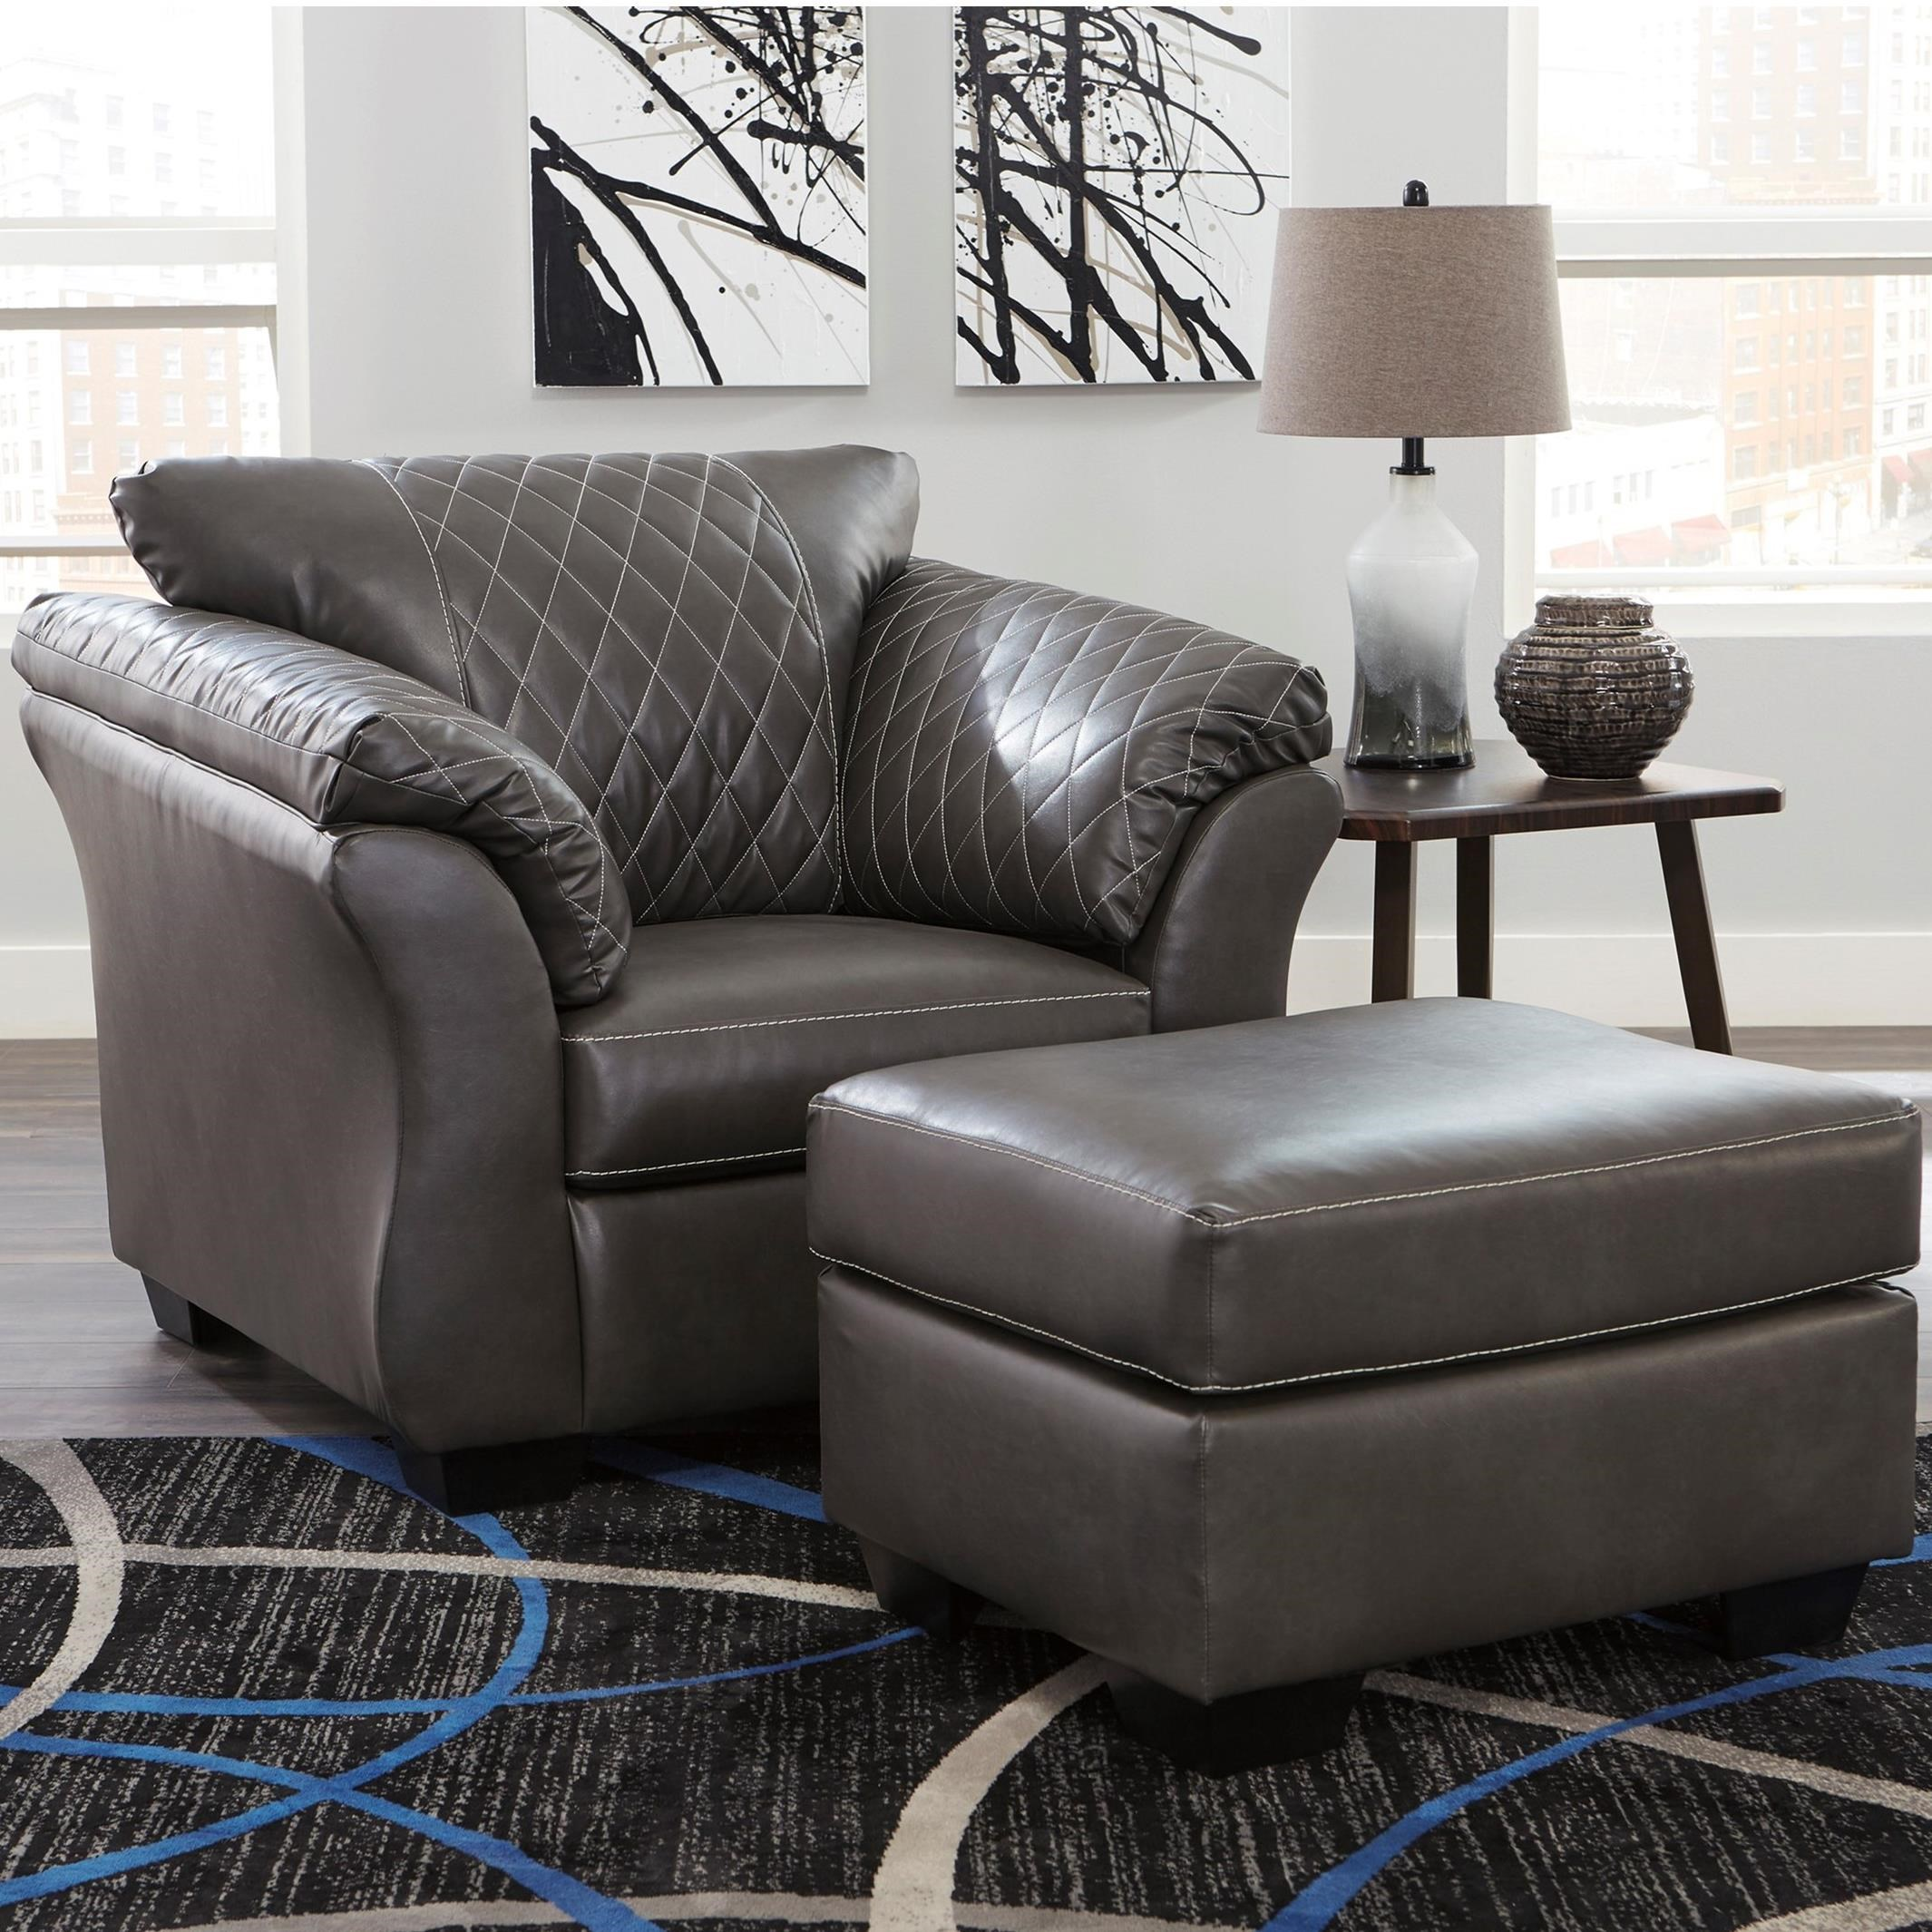 Contemporary Chair and Ottoman Set